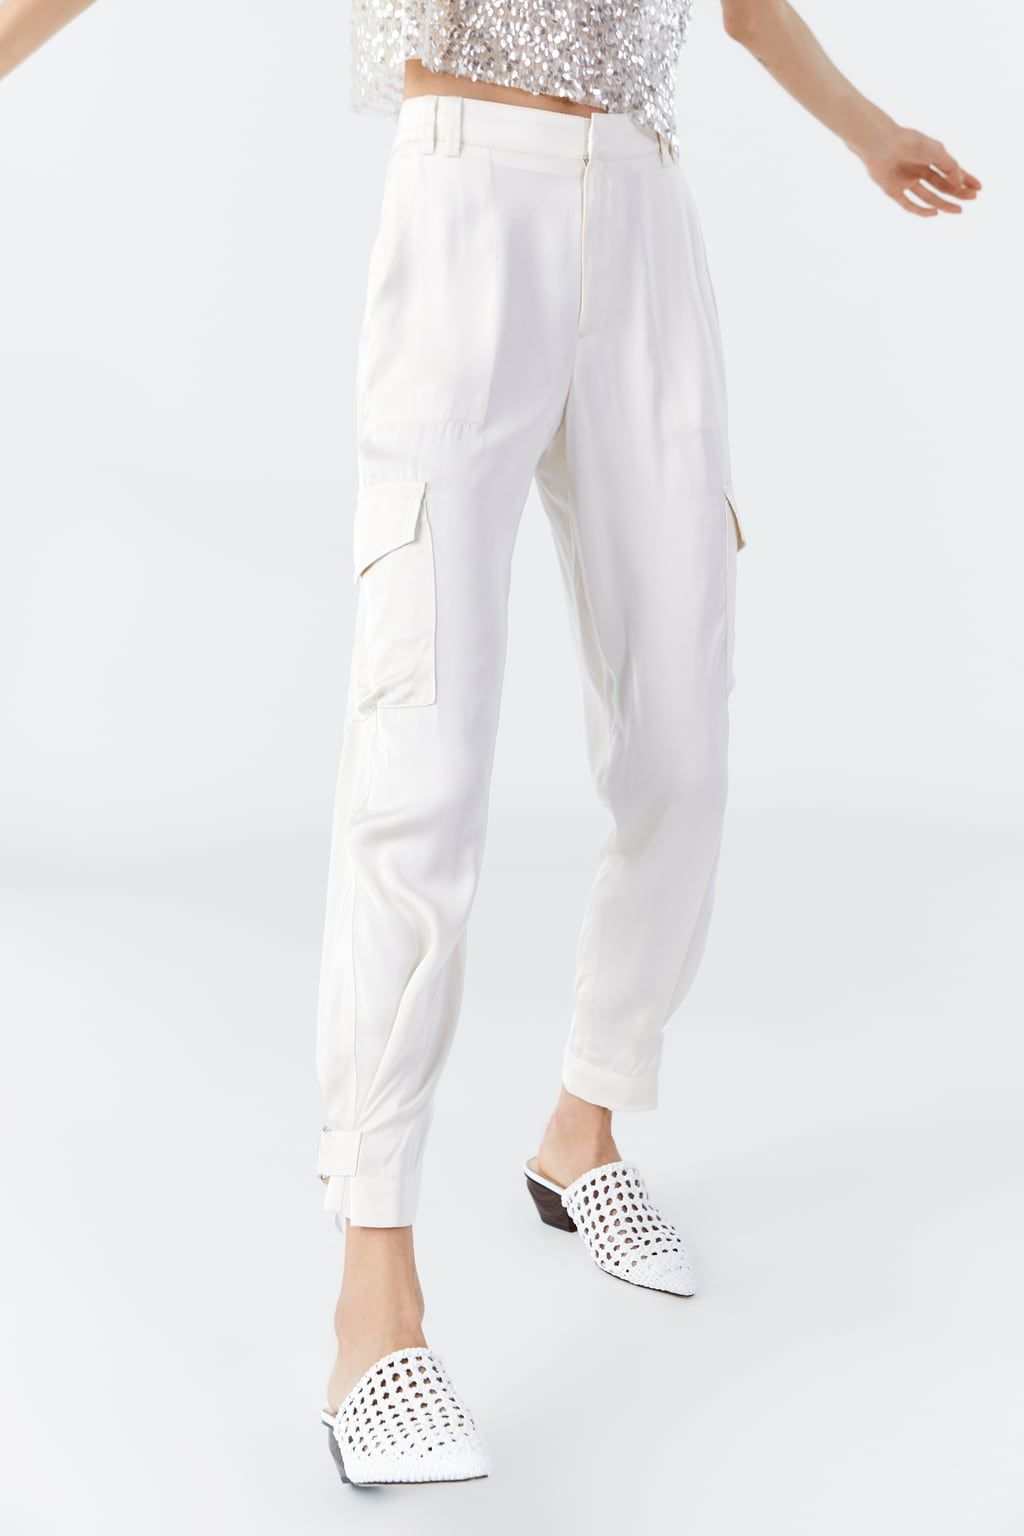 b136d2db Cargobukser i satin in 2019 | Zara | Satin trousers, Pants, Cargo pants